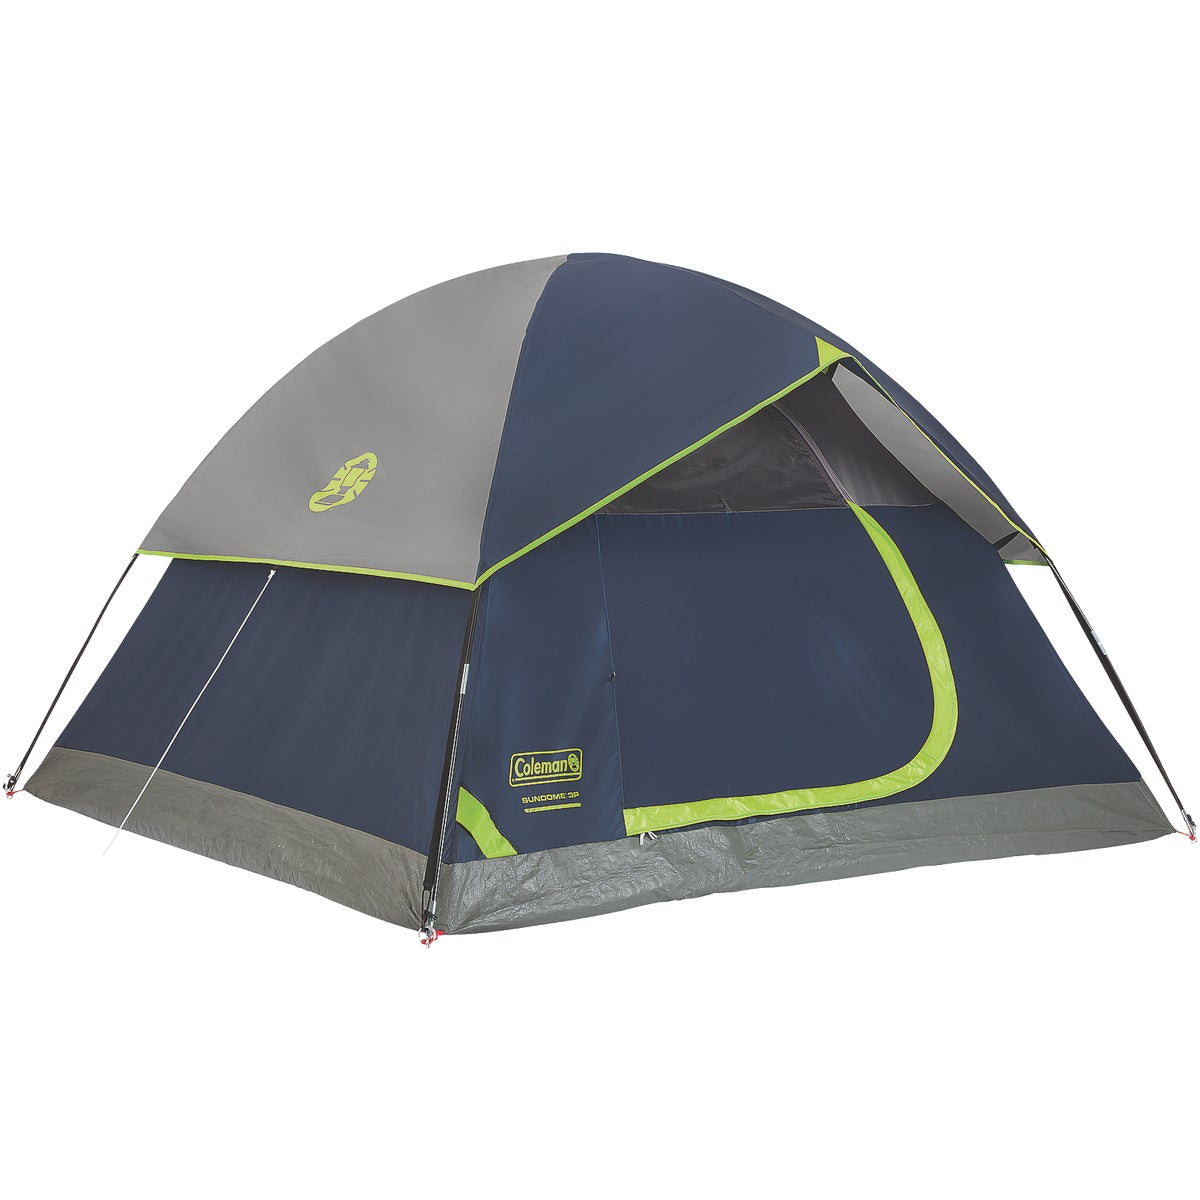 7X7 DOME TENT - 36420 by Academy Broadway Cor